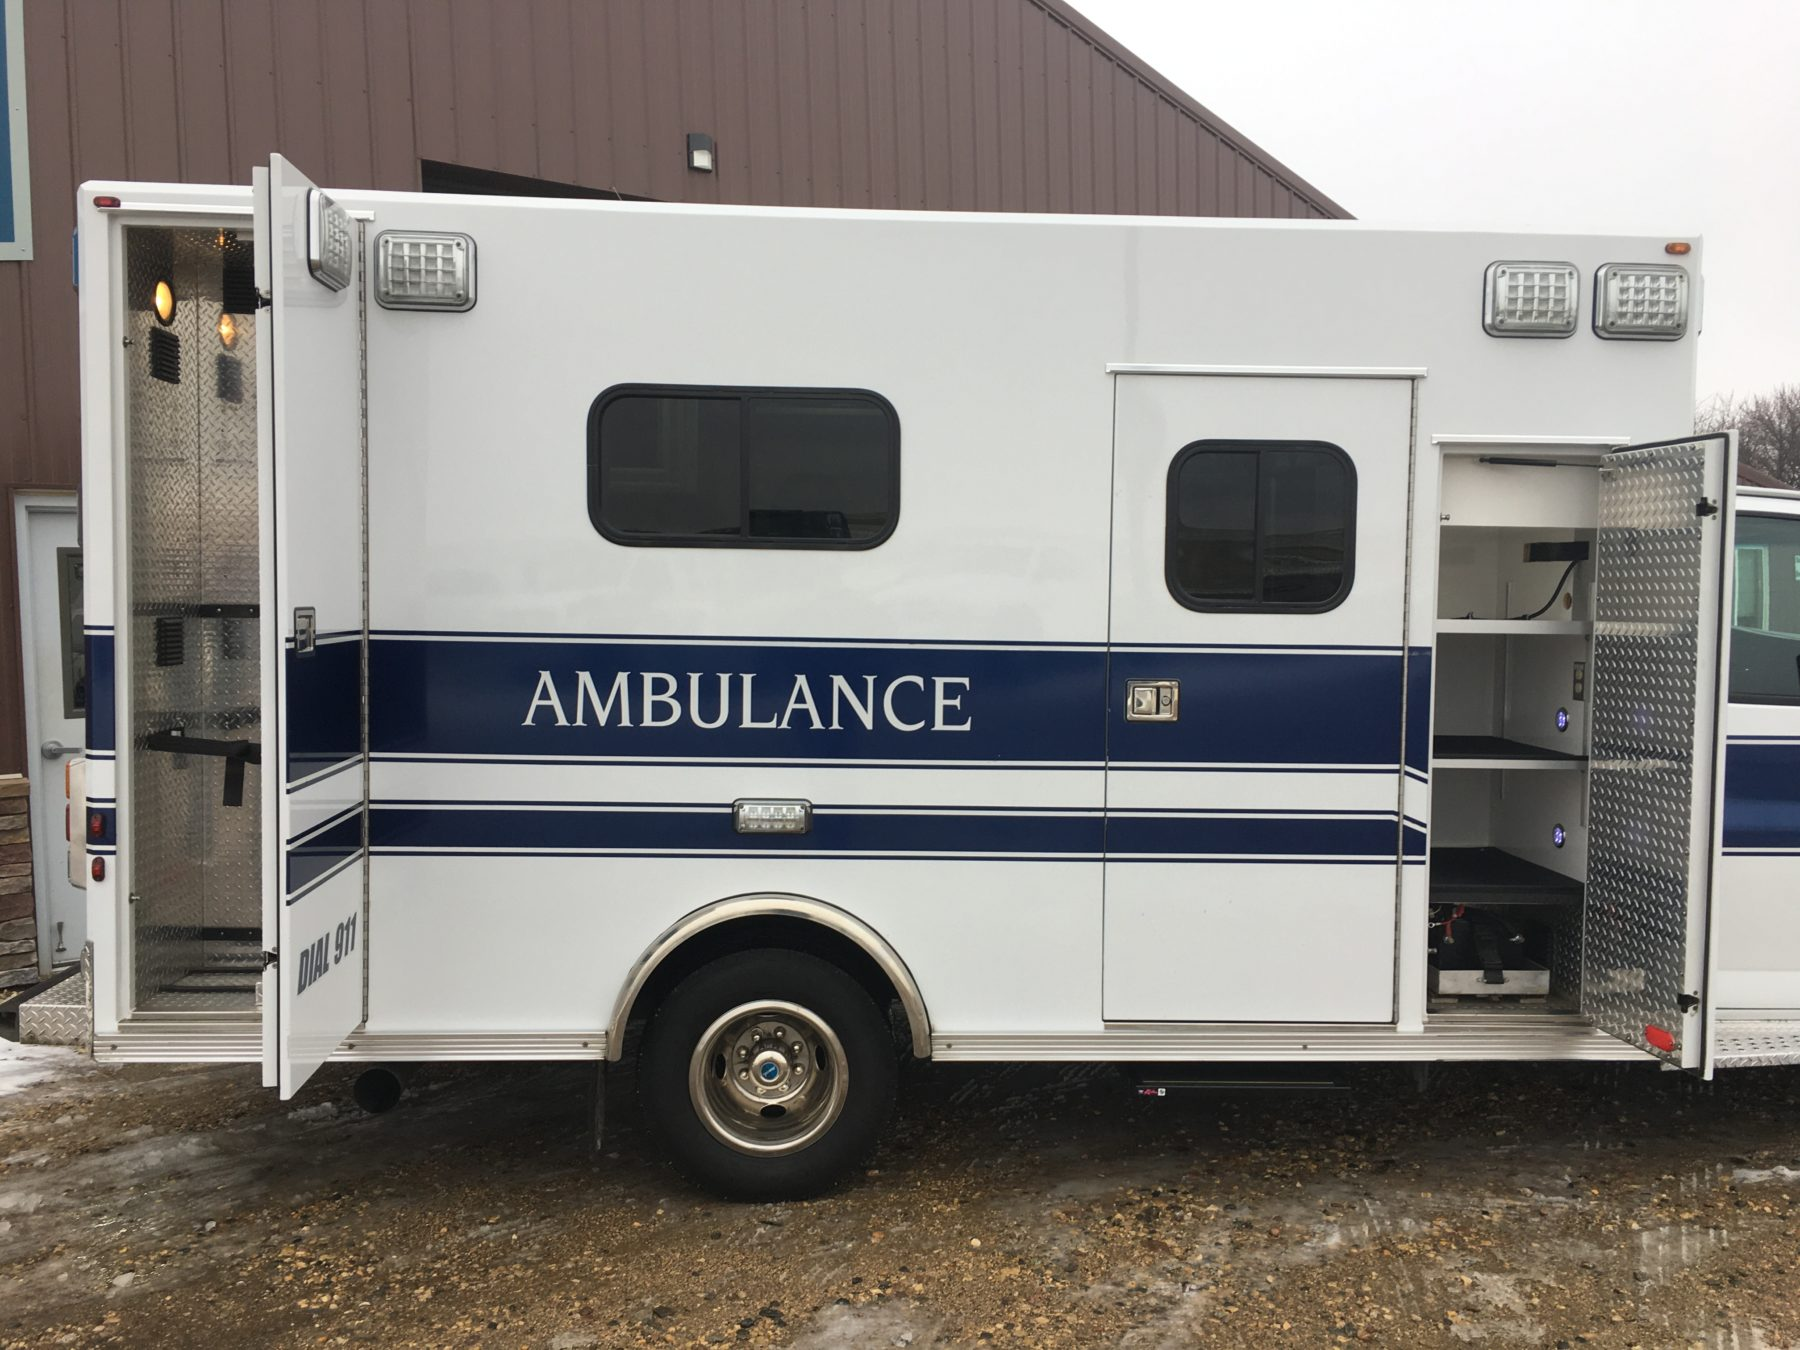 2014 Chevrolet G4500 Type 3 Ambulance For Sale – Picture 5